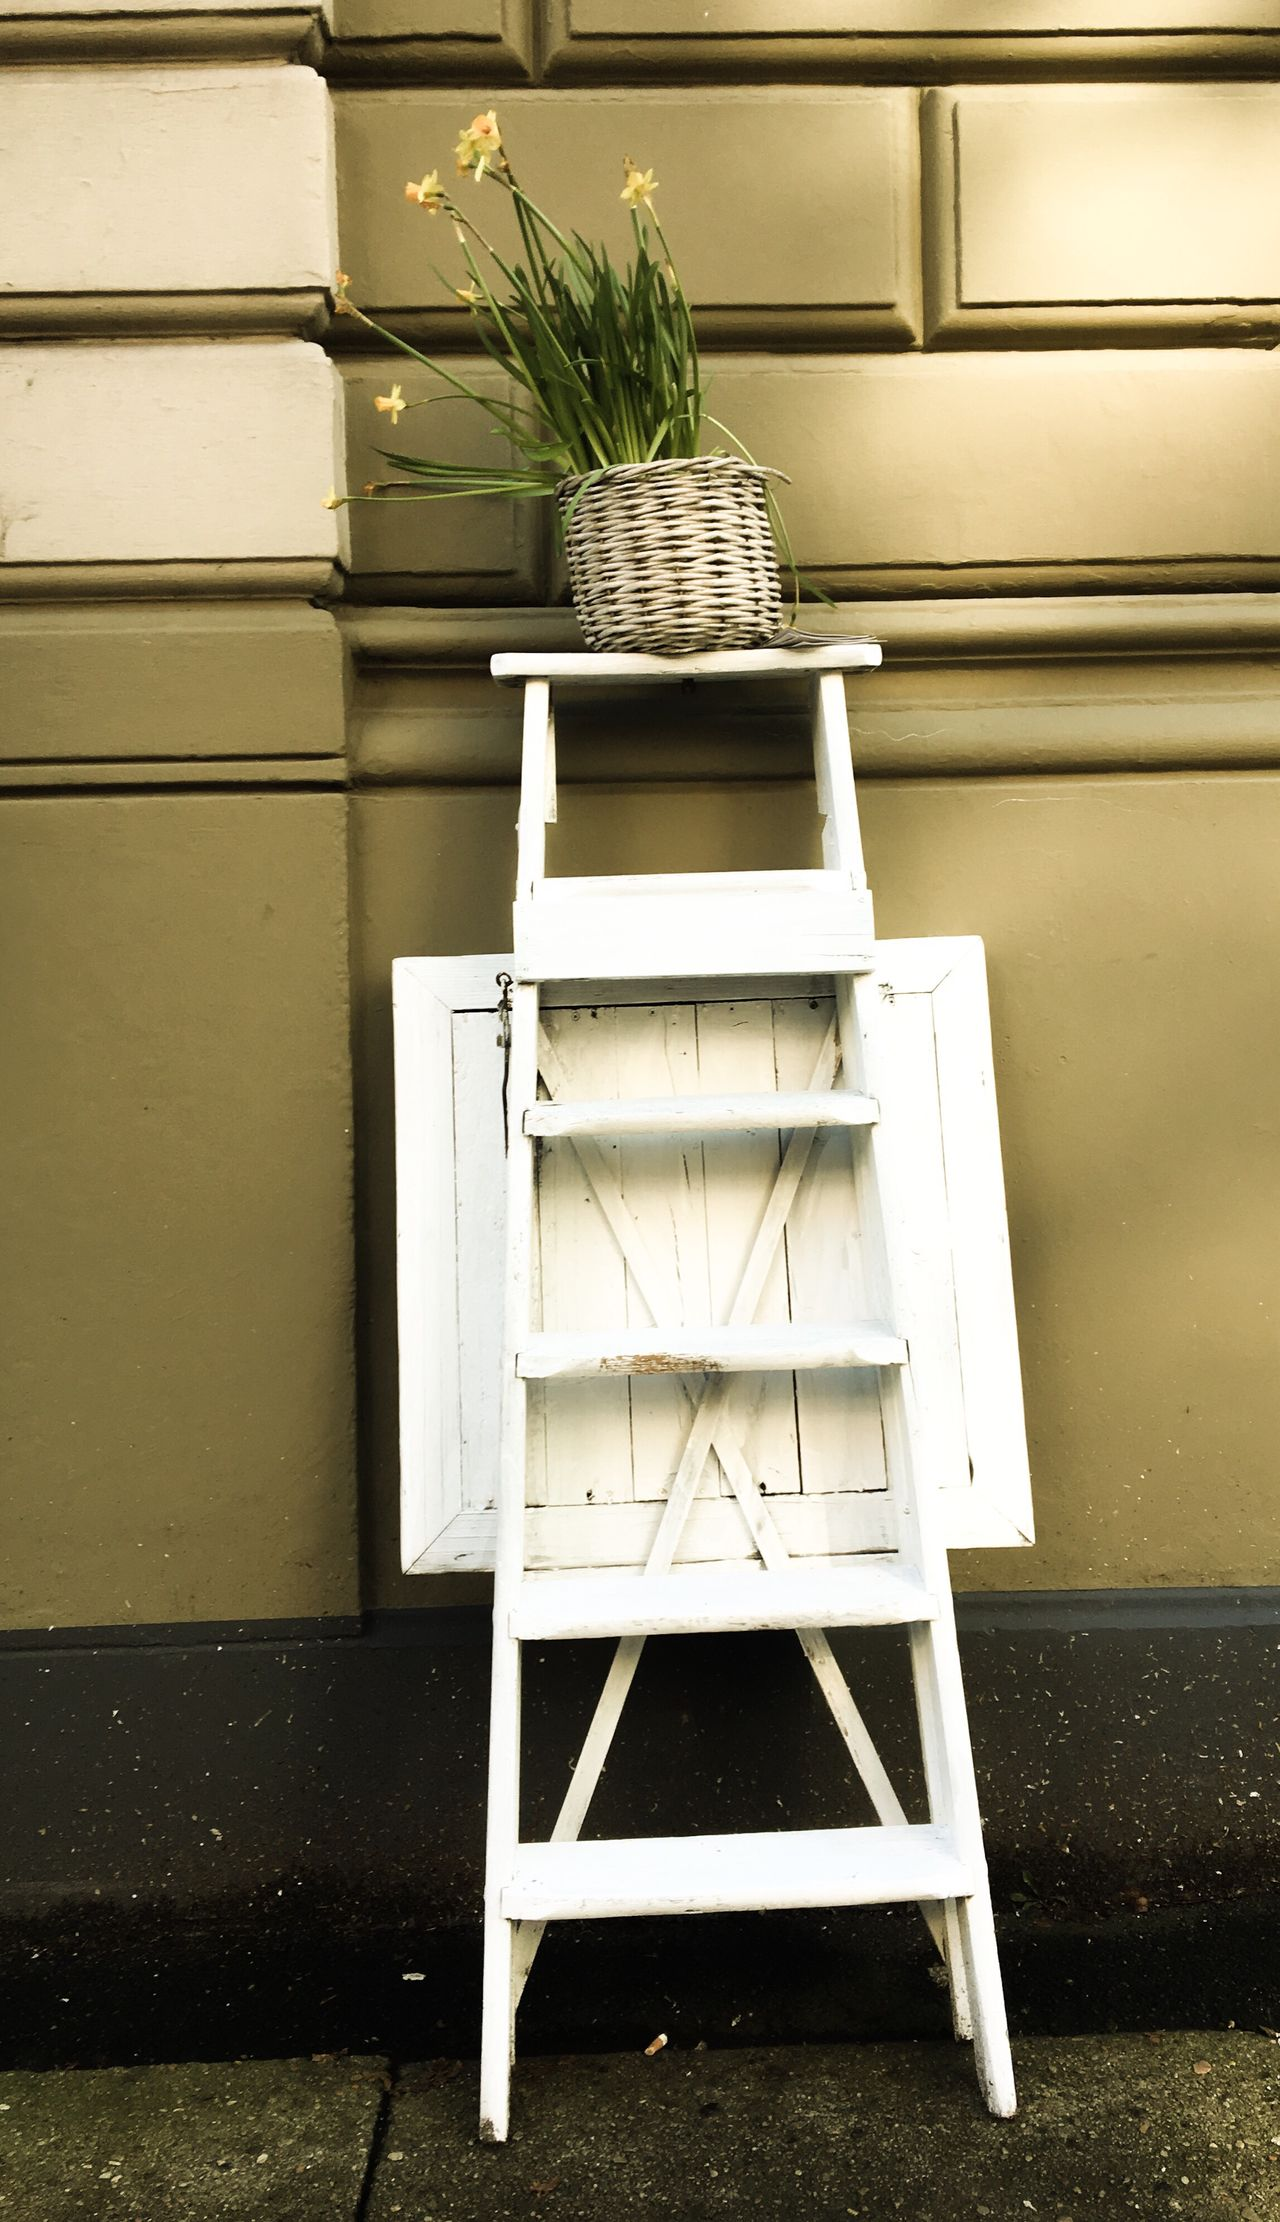 City Flowers No People Chair Table Plant Day Outdoors Architecture City Spring Flowers White Ladder Retro Green Wall Façade Citylife Flower Stand